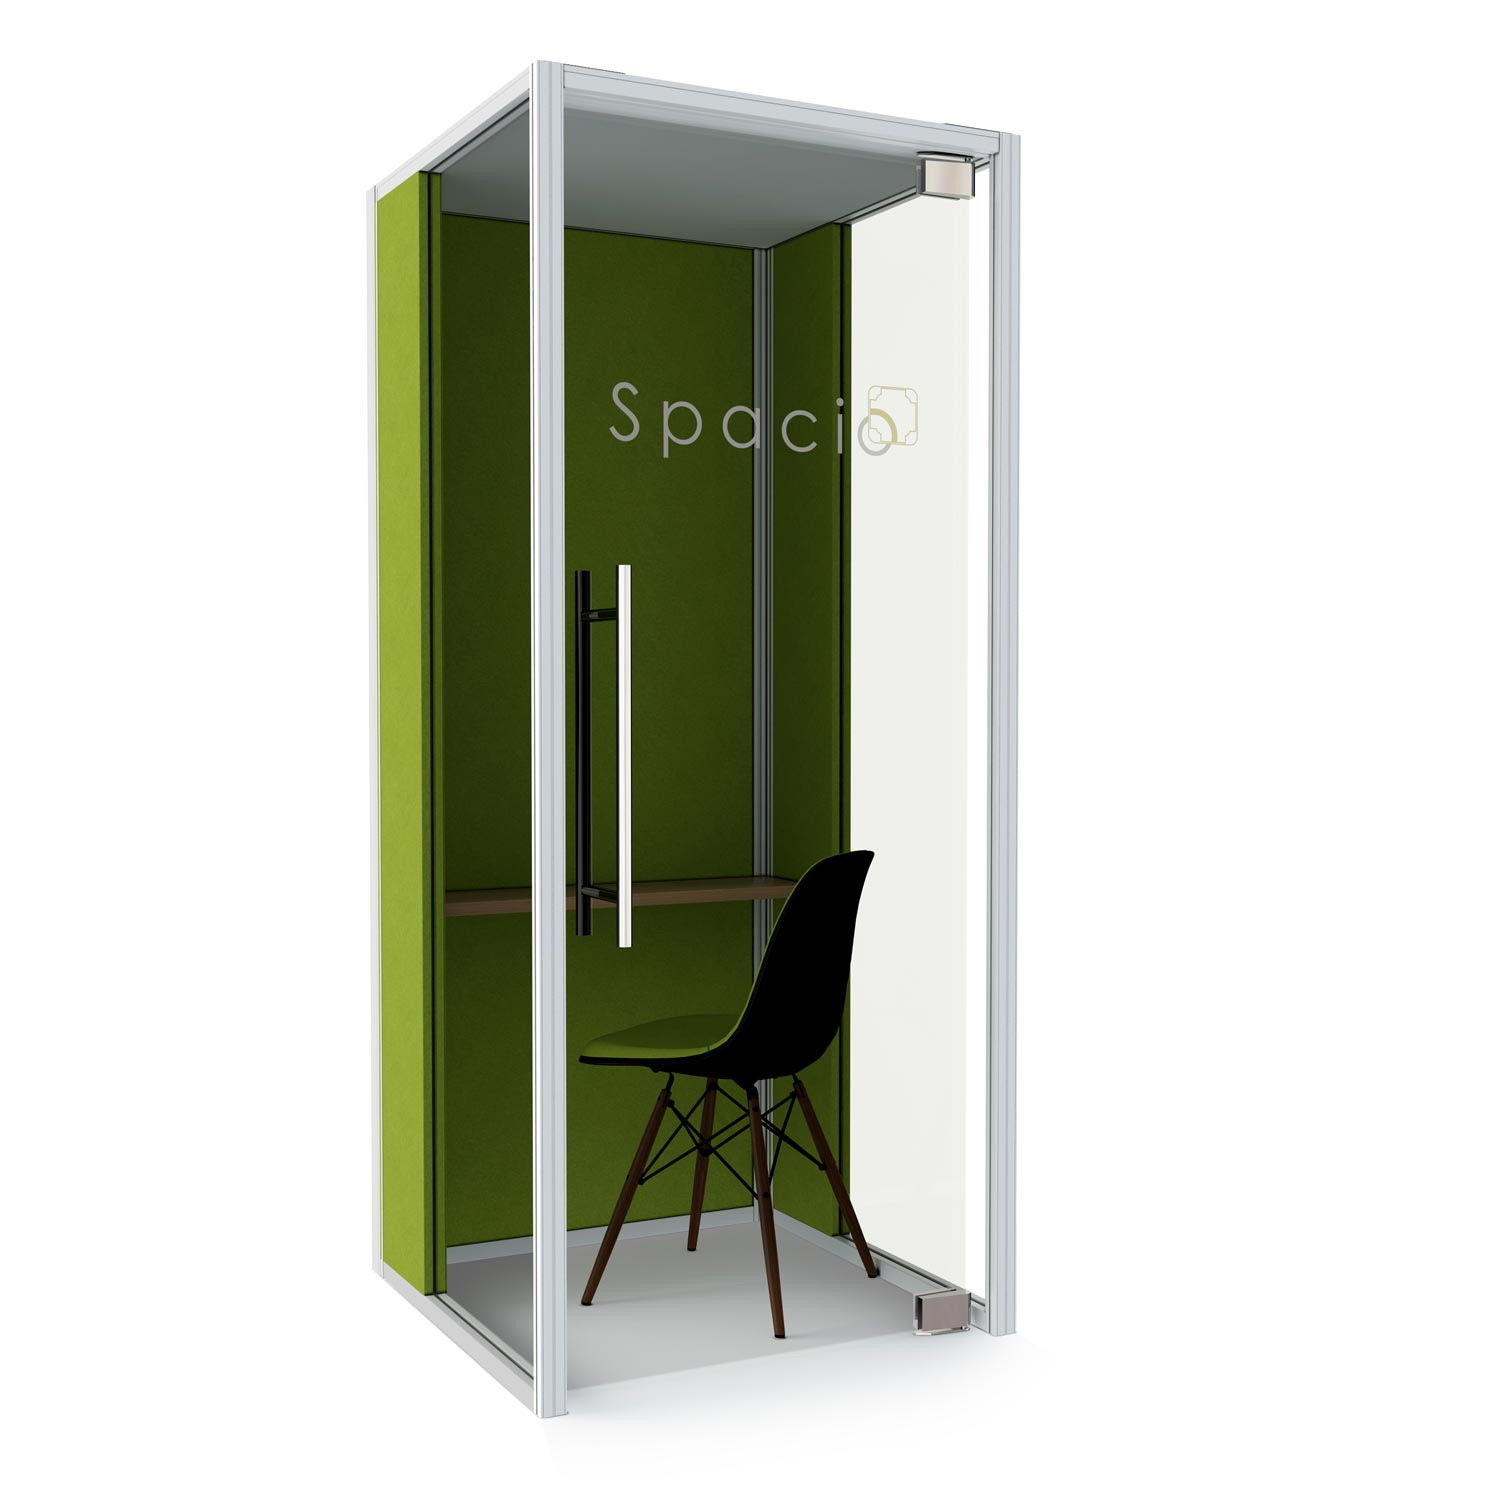 Spacio Lite Phone Booth